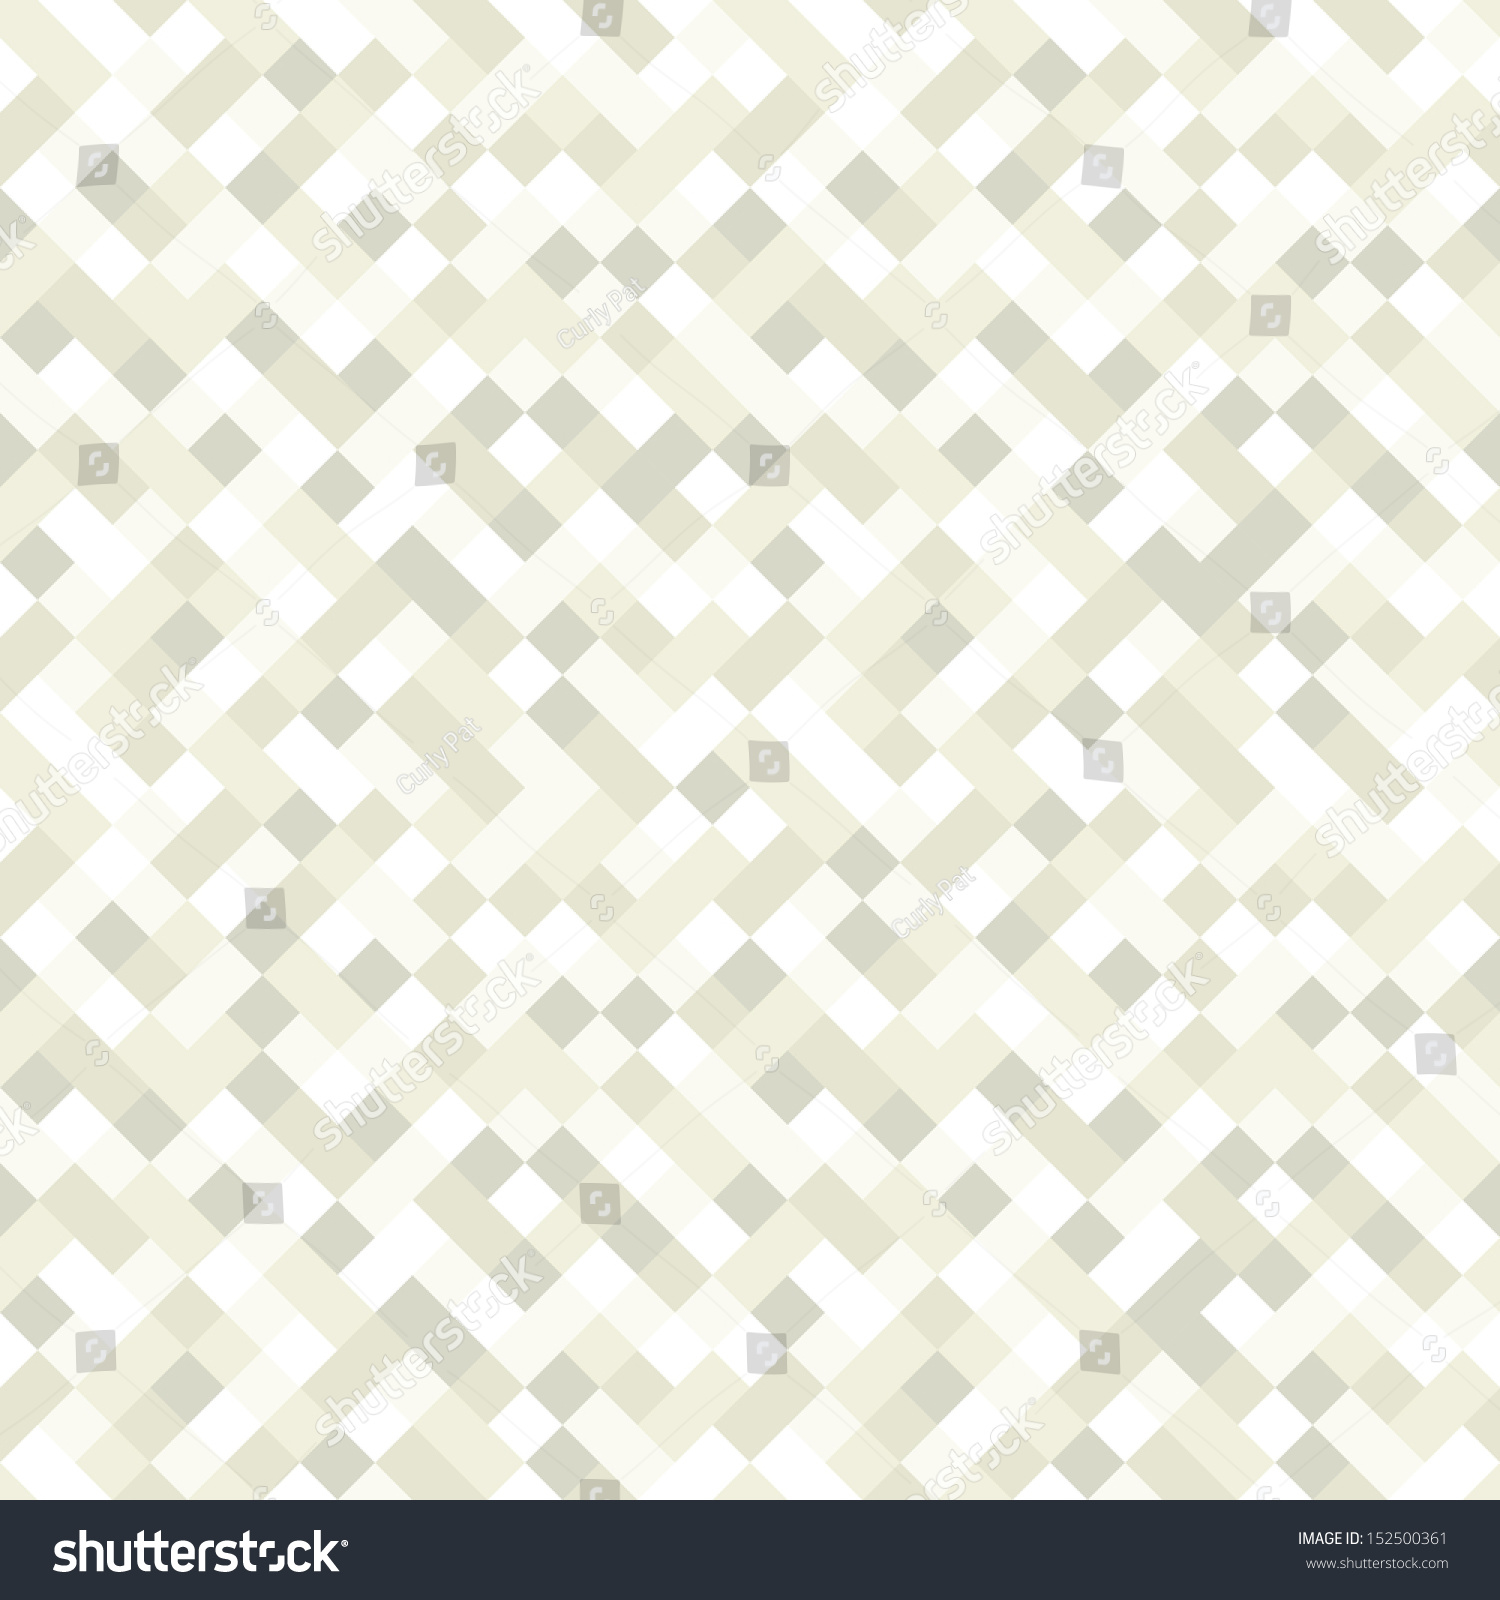 Vector Seamless Pattern Modern Stylish Texture Stock Vector 152500361